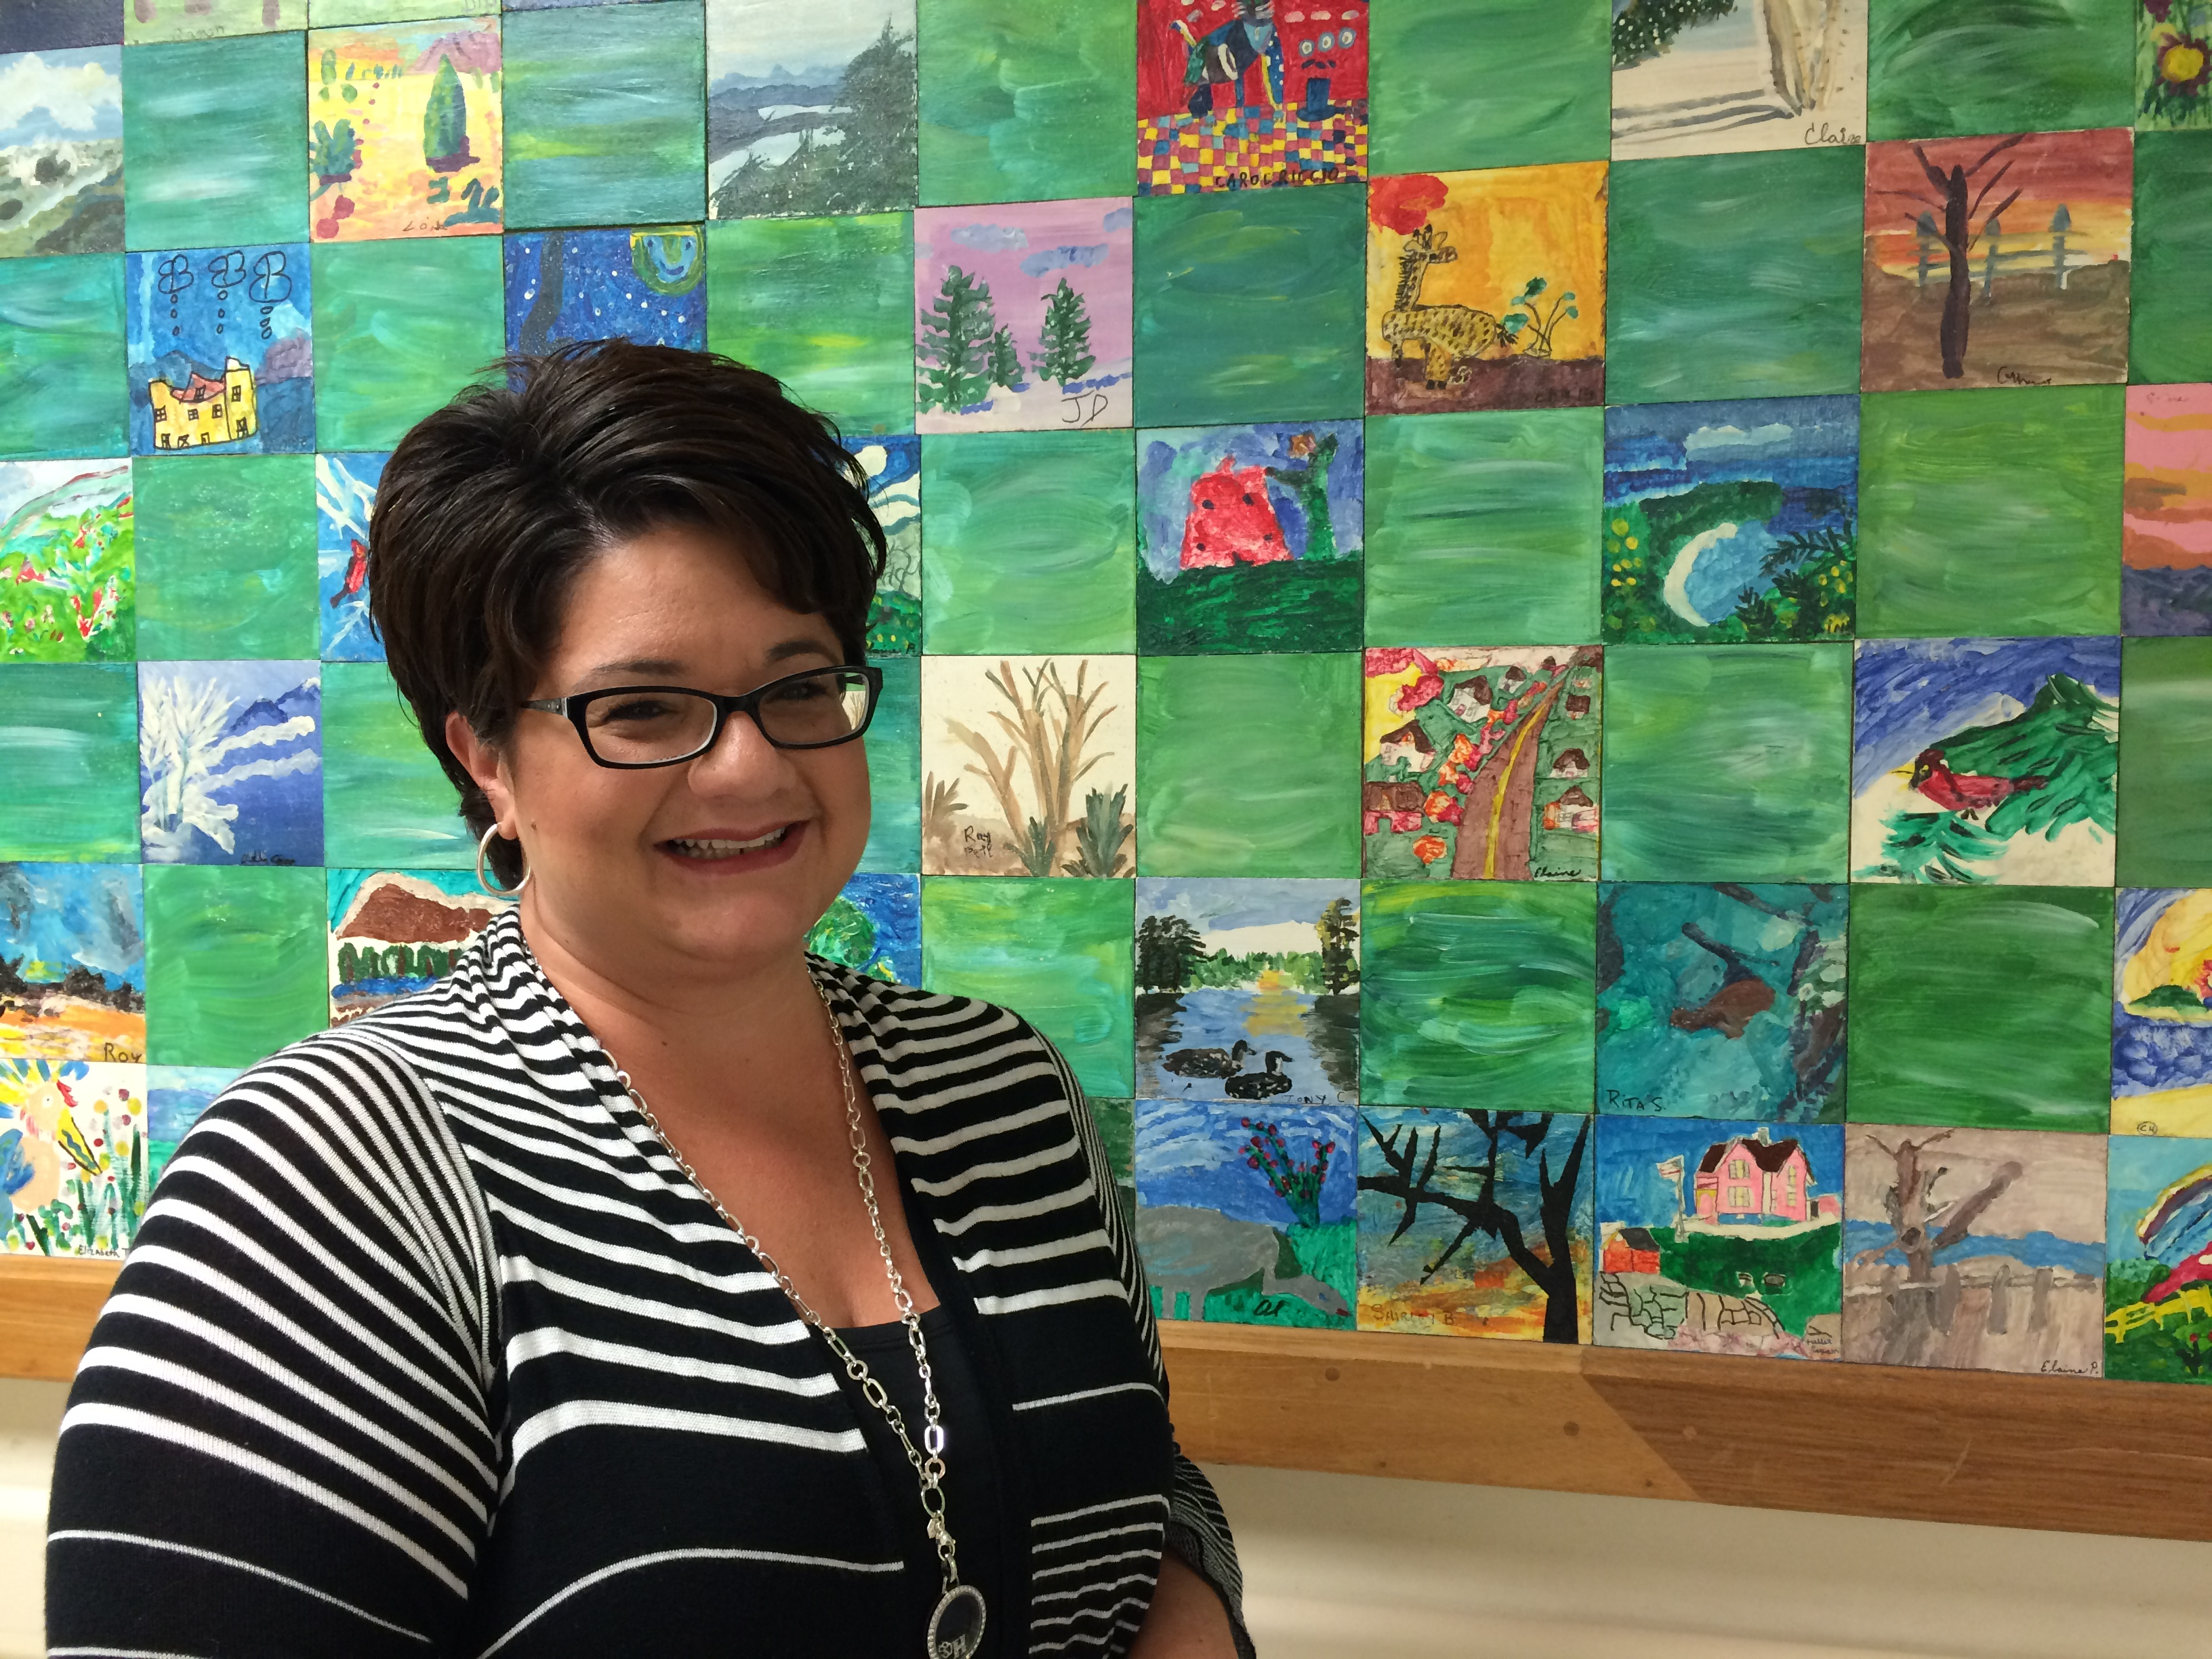 Jennifer McCarthy, a hospital administrator, leads a tour, starting in the main corridor near this patient mural.